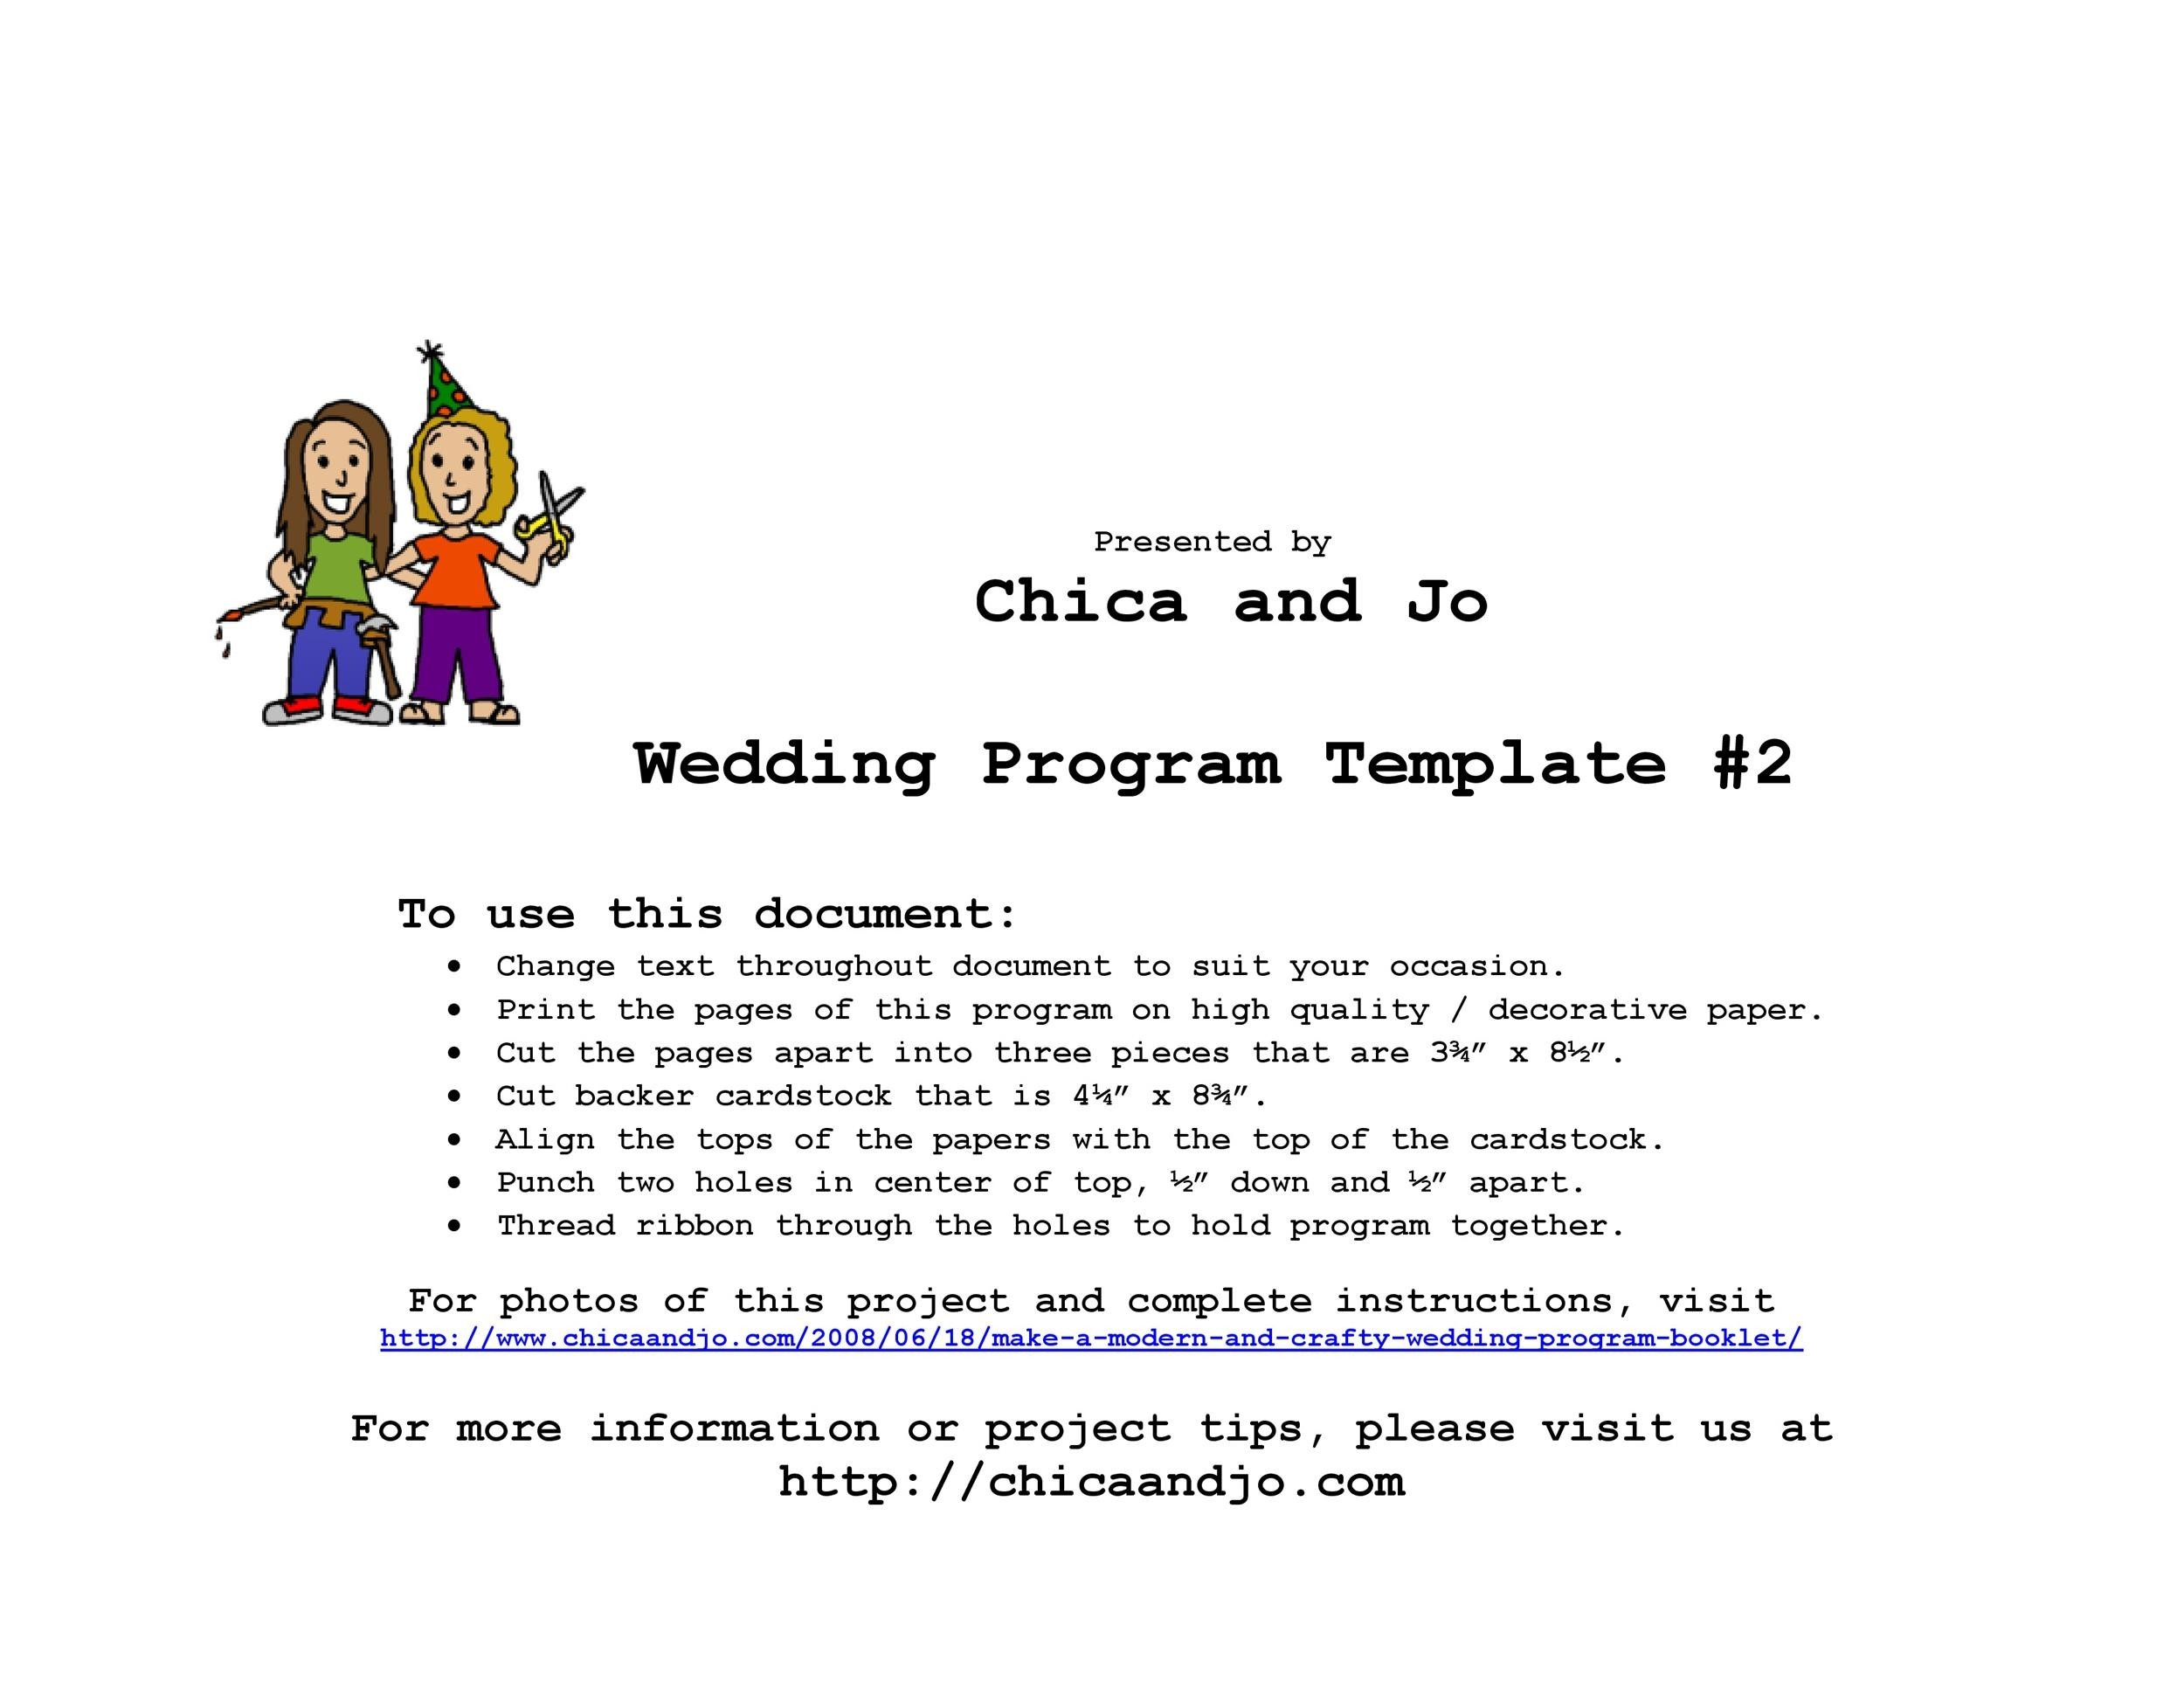 37 Printable Wedding Program Examples  Templates - Template Lab - wedding program template